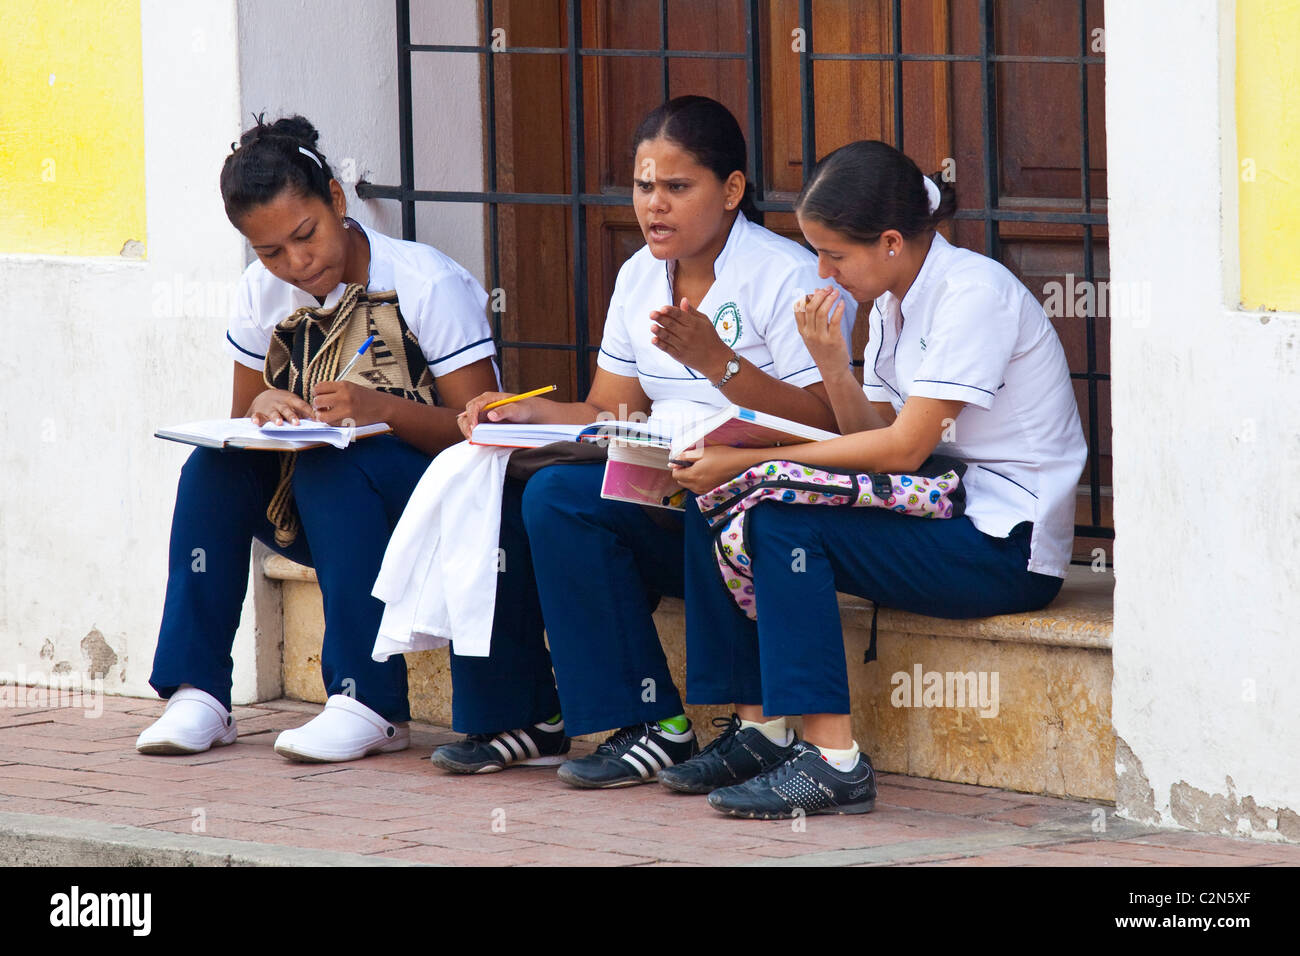 Girls studying, Getsamani, old town, Cartagena, Colombia - Stock Image